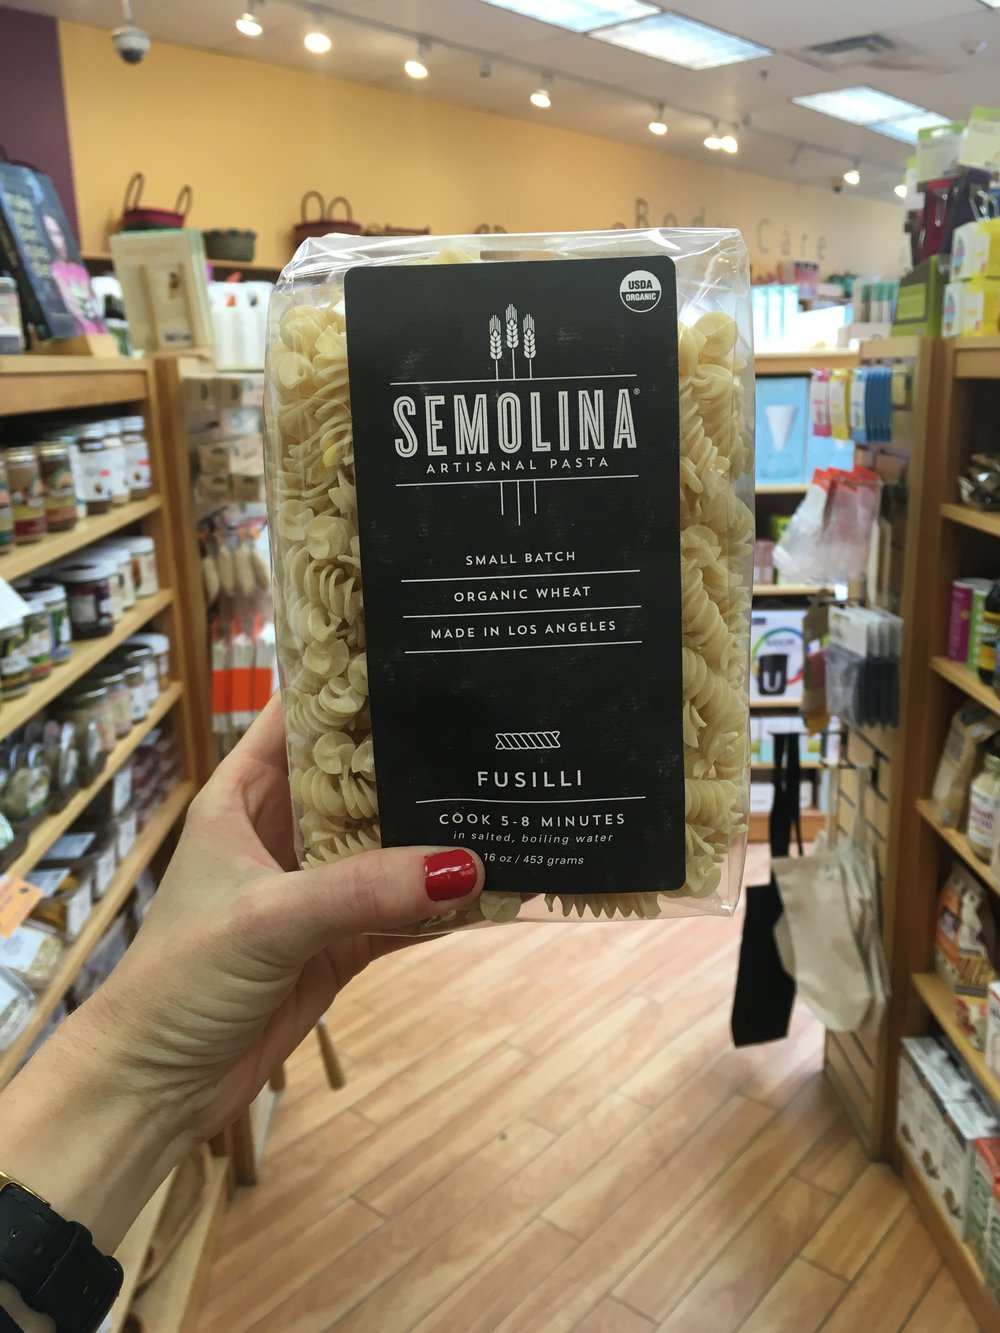 Some of our favorite pasta in the world is made by Semolina in Los Angeles! Use this or the delicious Jovial Gluten Free Penne in the two recipes, below.